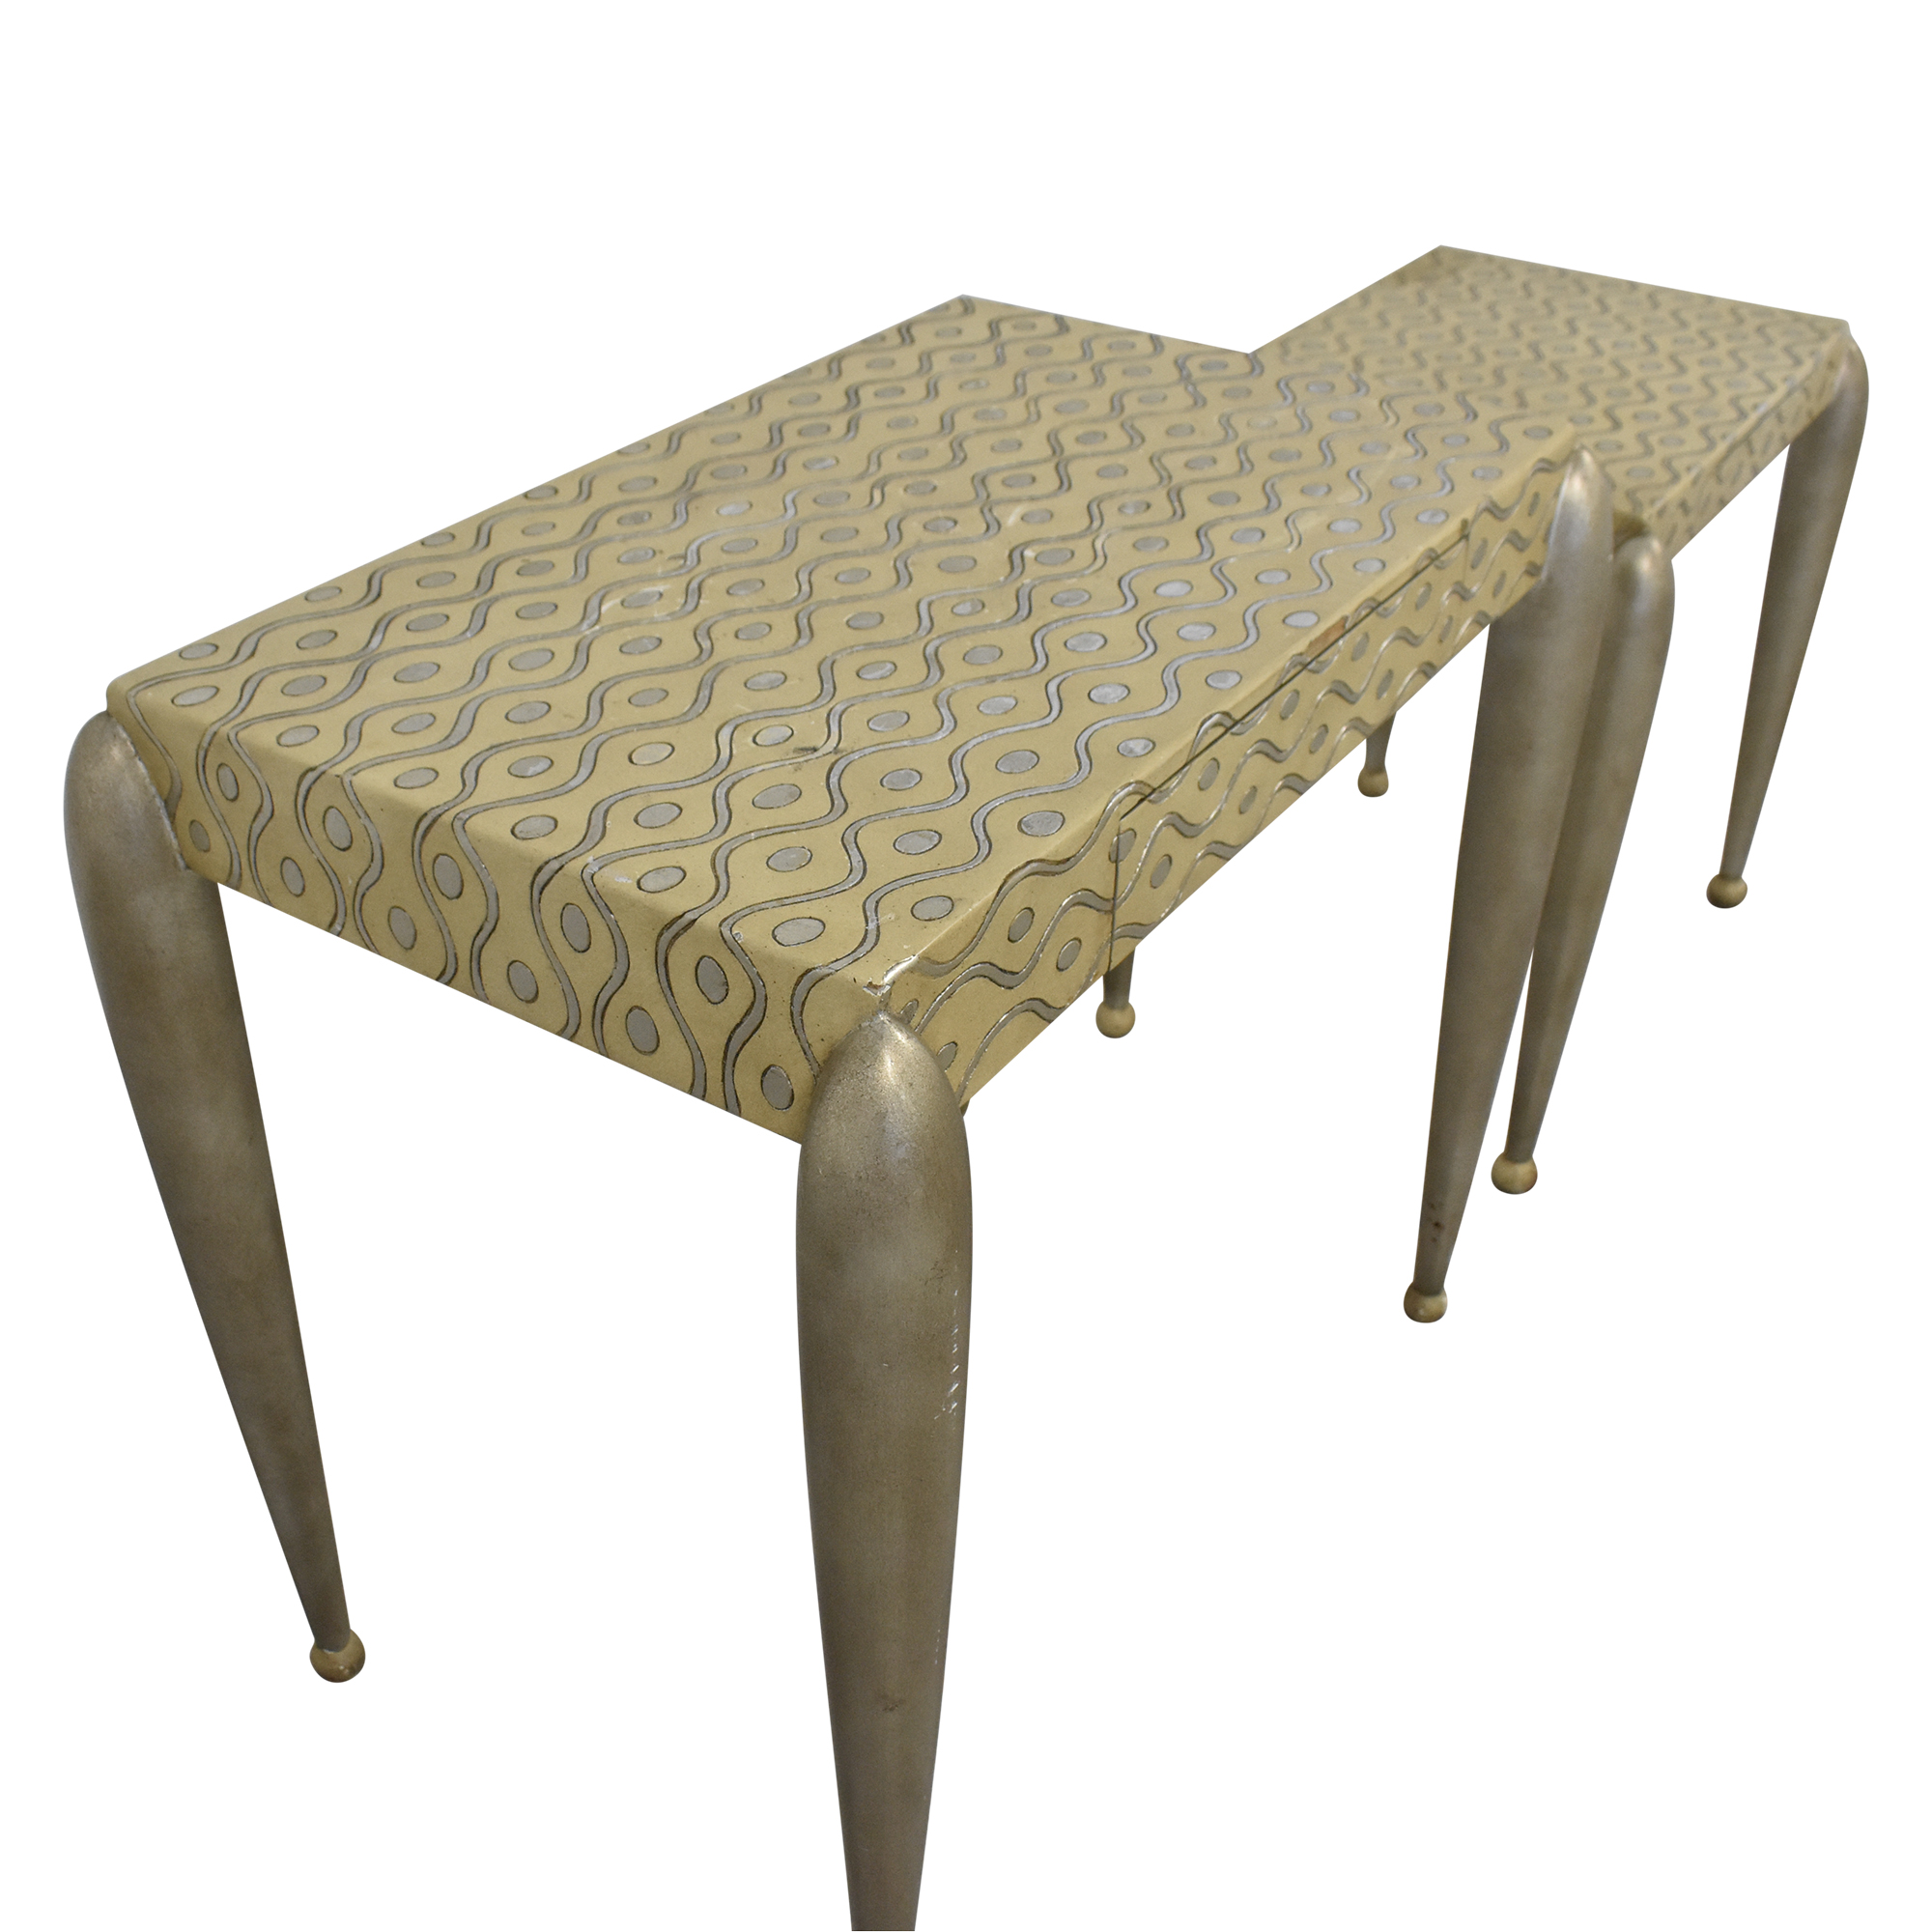 ABC Carpet & Home African Inspired Nesting Tables with Drawers on sale